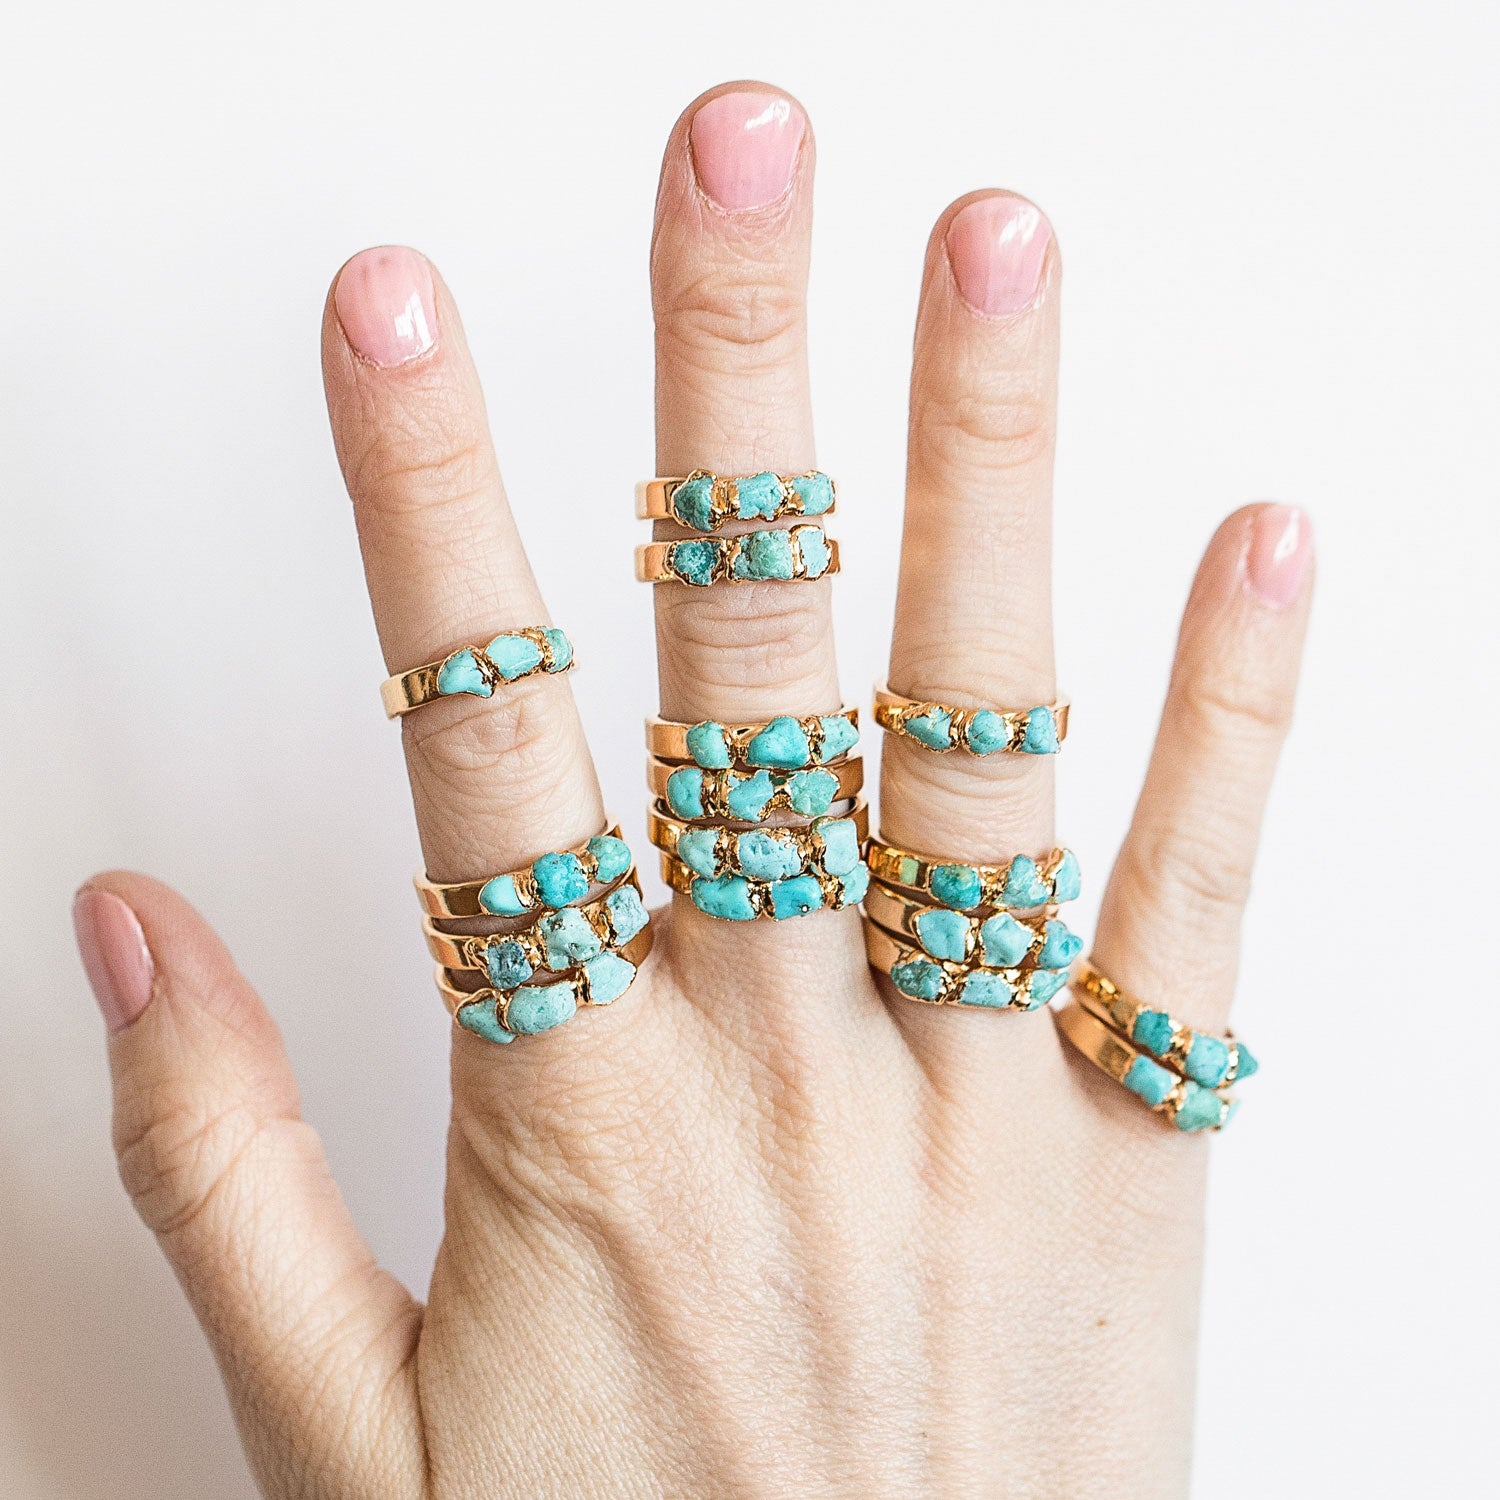 Turquoise Stone Ring by Dani Barbe